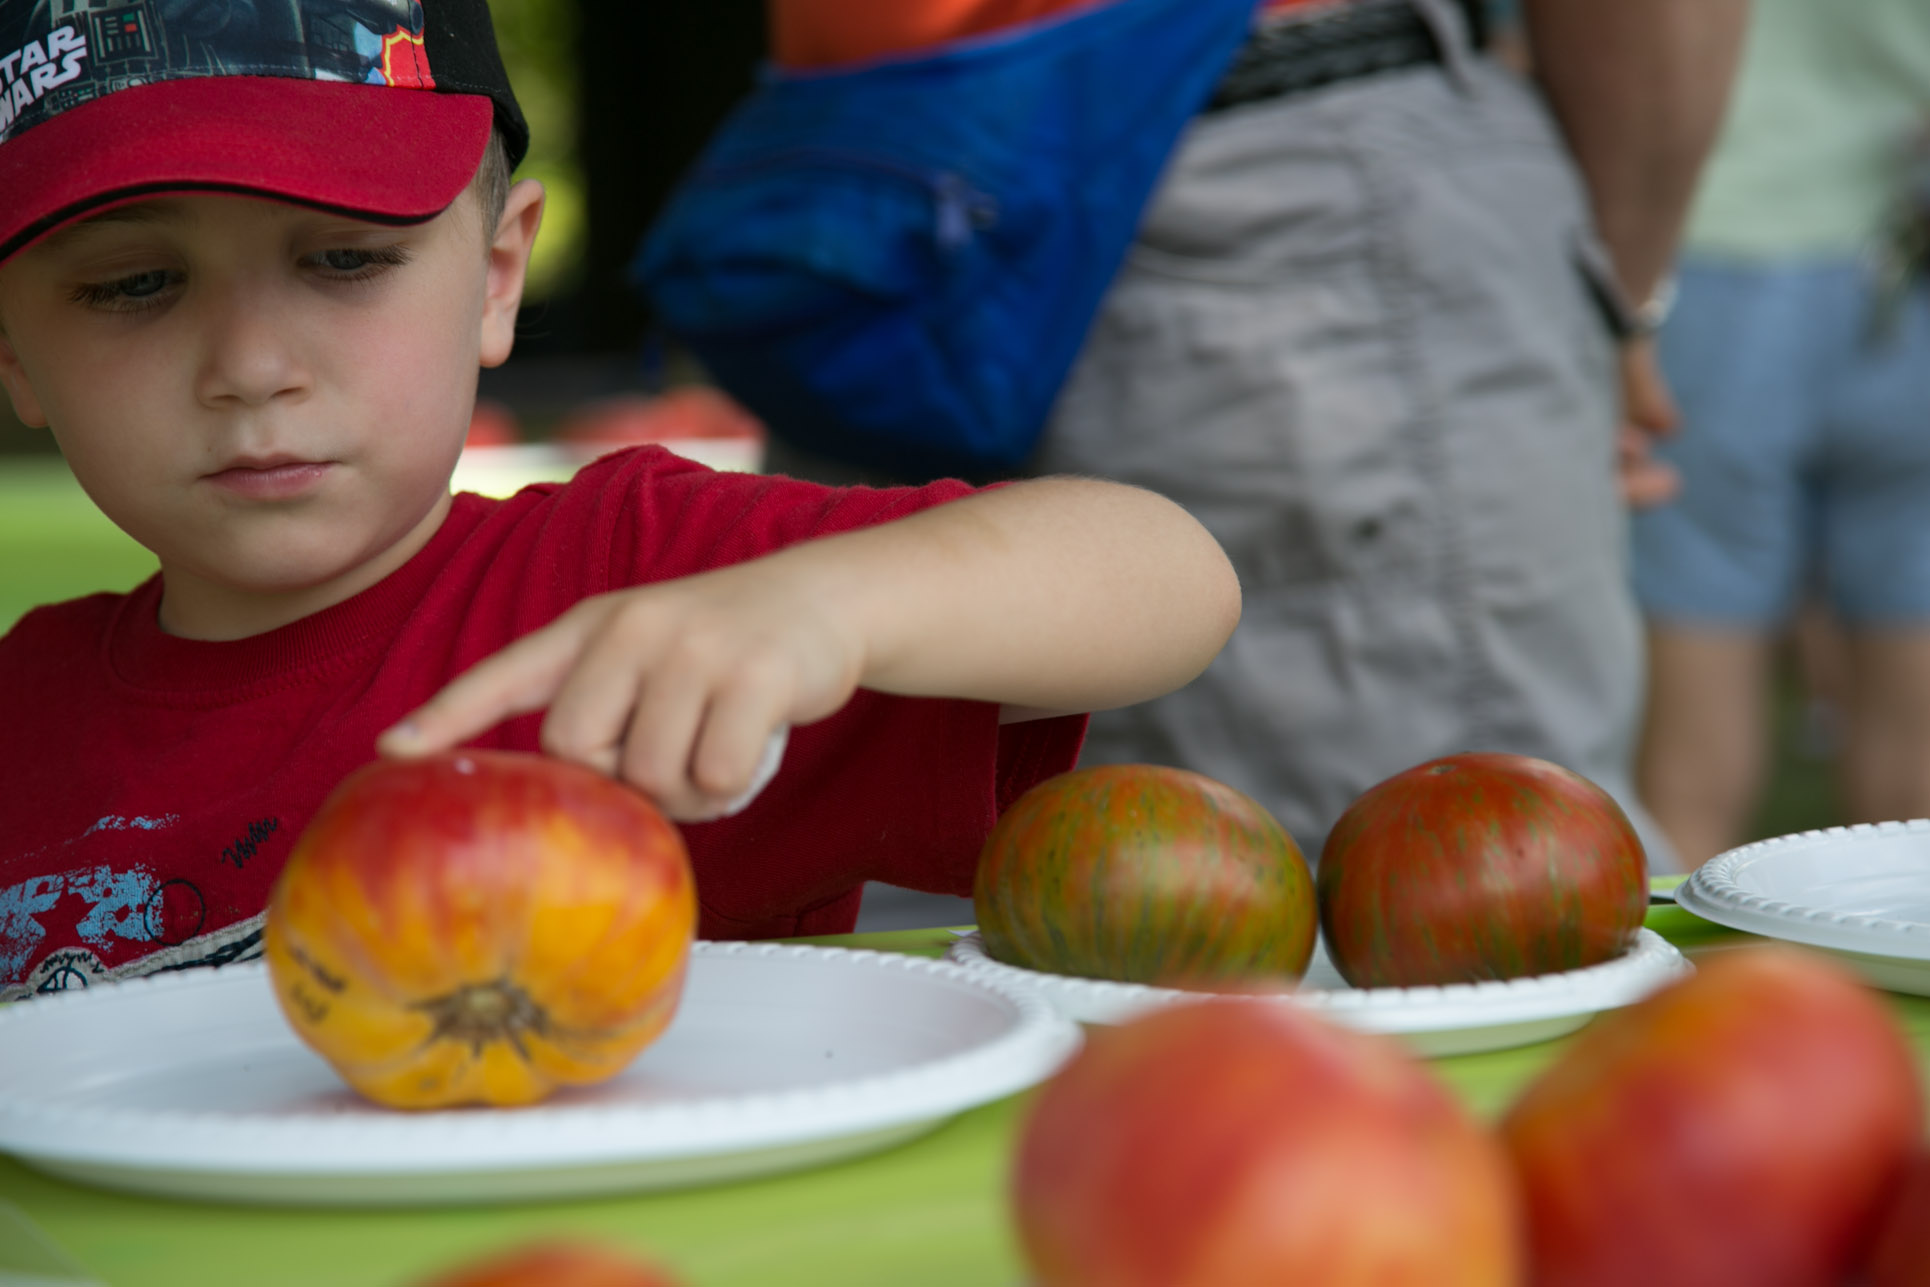 The joy of a tomato - taken at Tomatopalooza by Stephen Garrett